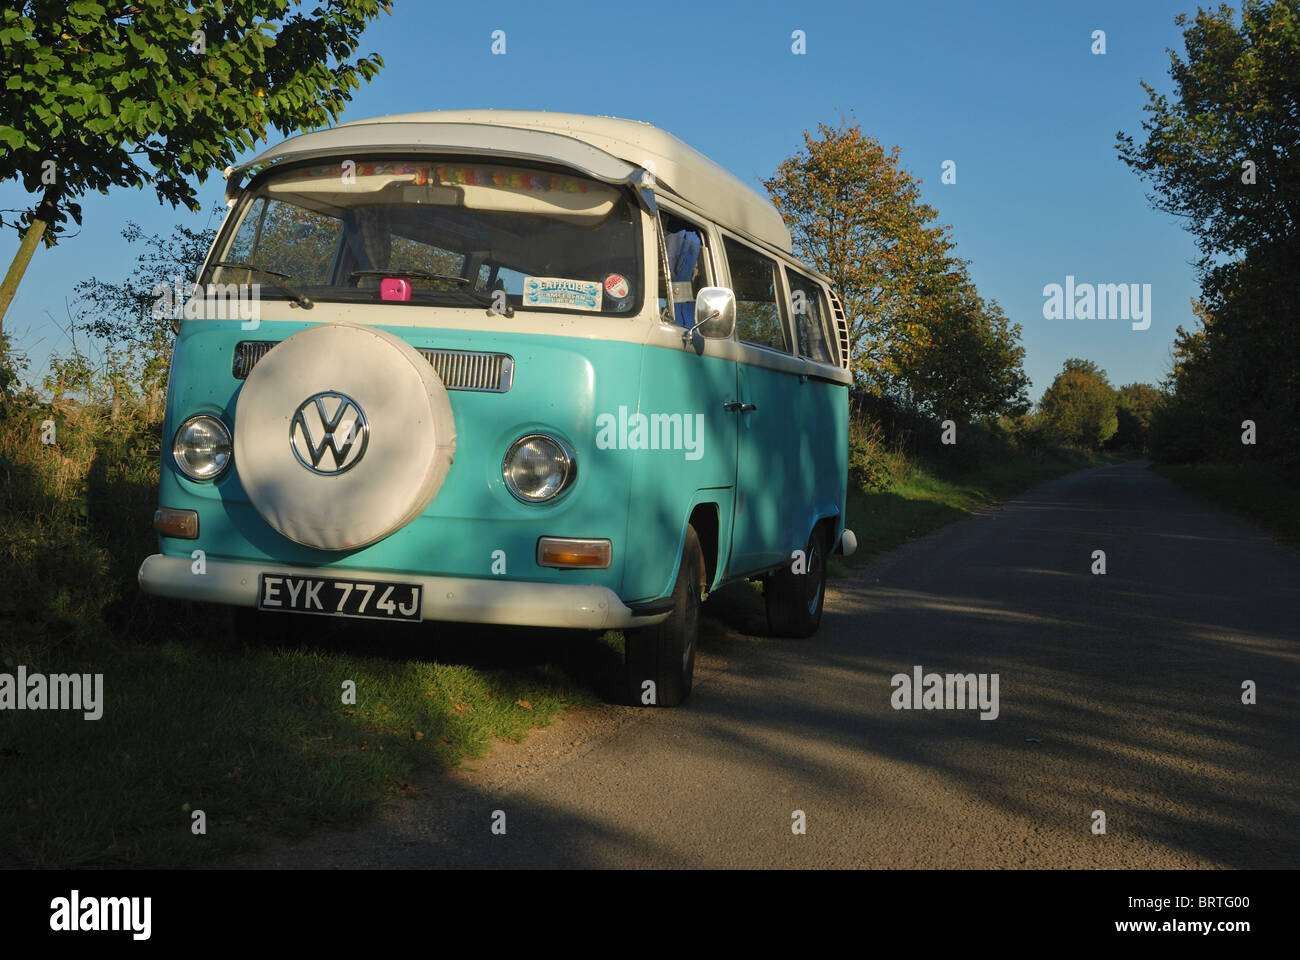 A VW camper van parked in a country lane in Lincolnshire, England. - Stock Image